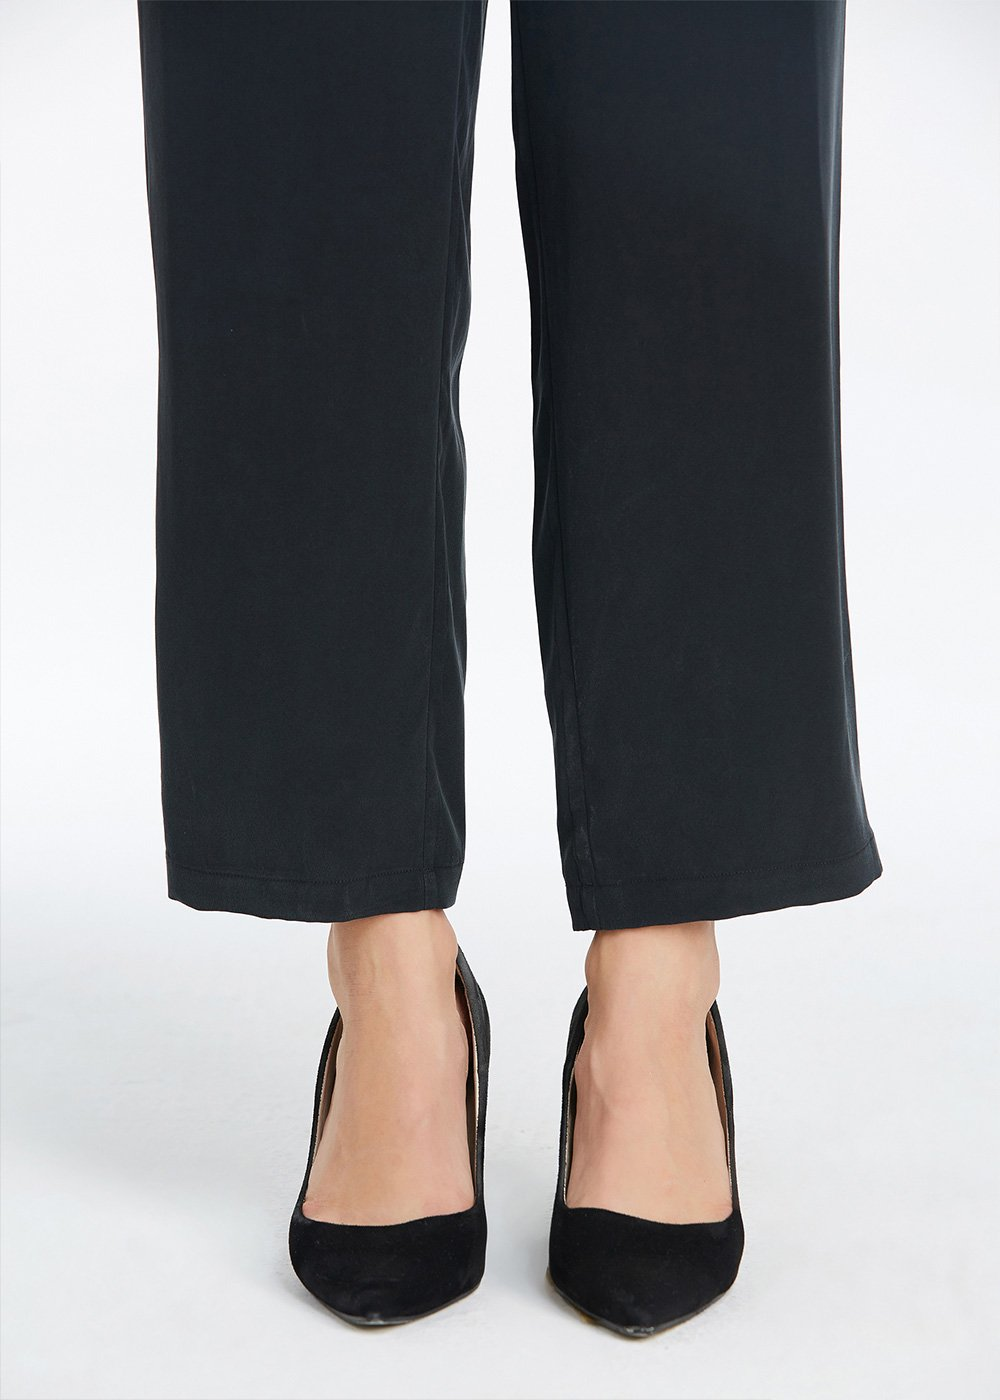 LILYSILK Silk Pants Women Pure Mulberry Real 23MM Casual Business Bottoms Soft Harem Style Black S/4-6 by LilySilk (Image #7)